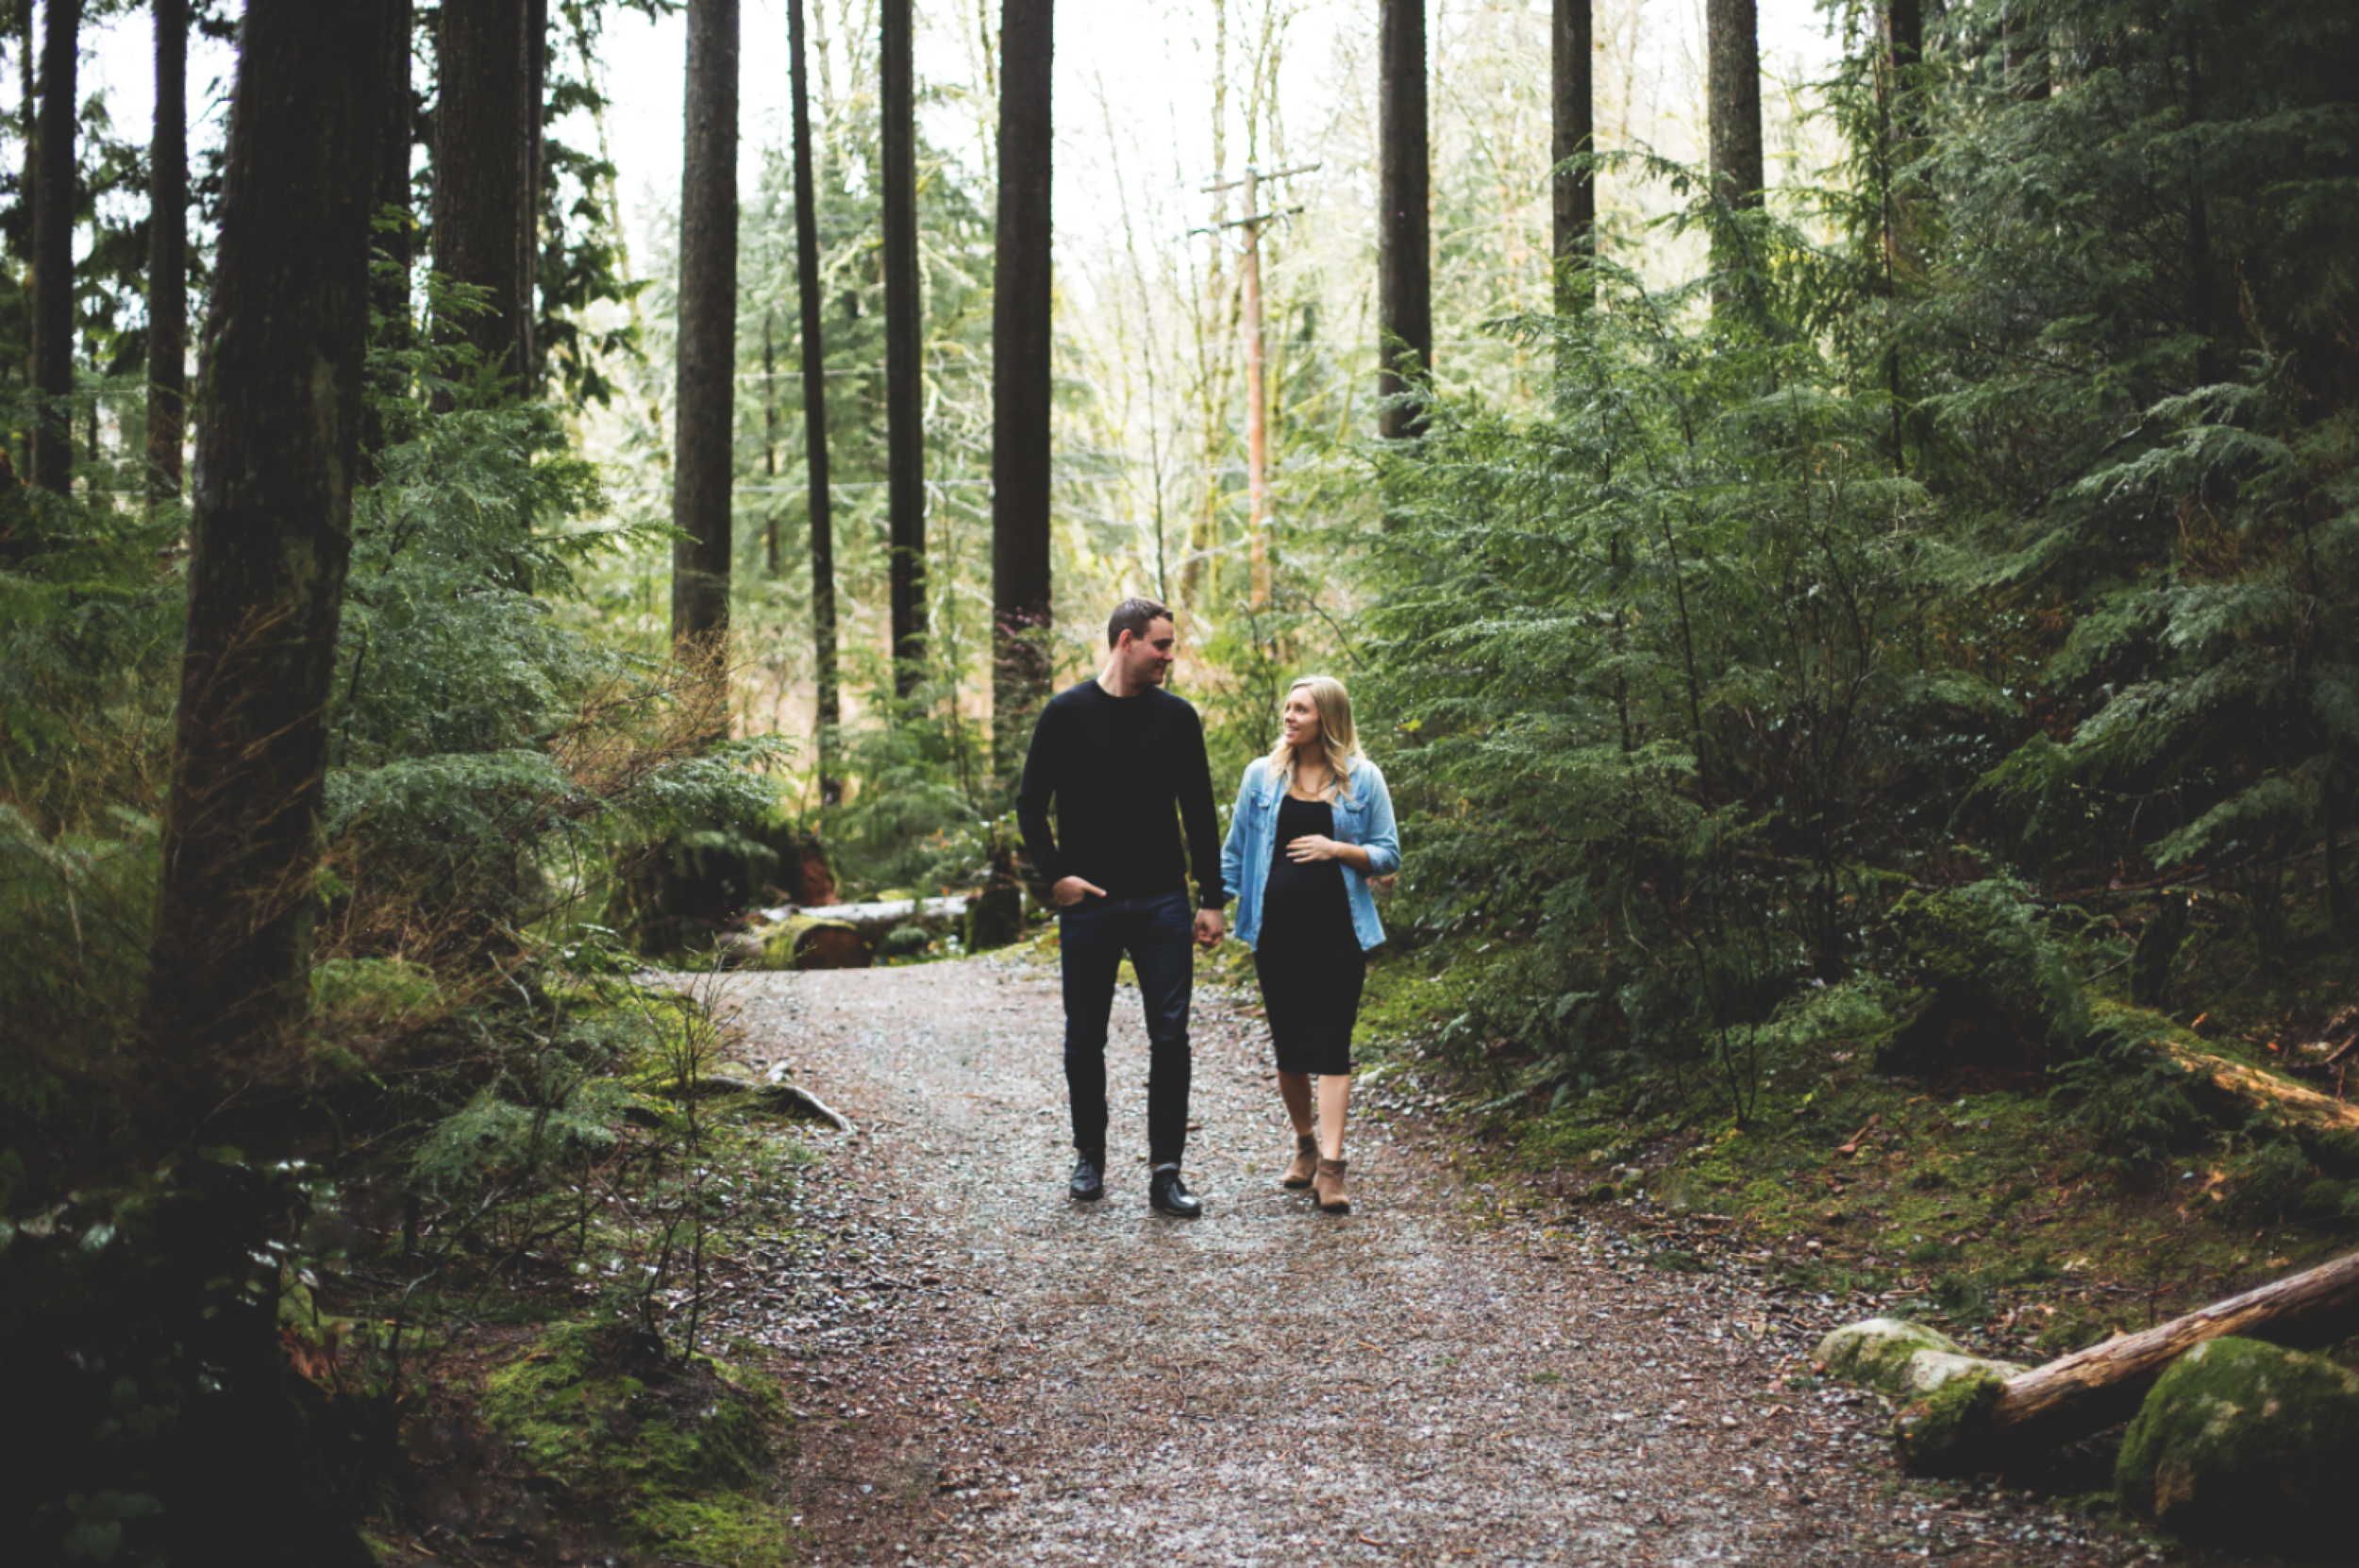 Maternity-Session-North-Vancouver-Lynn-Canyon-BC-Hamilton-Burlington-Oakville-Niagara-Toronto-Wedding-Portrait-Photographer-Expecting-Photography-Waterfront-HamOnt-Golden-Hour-Moments-by-Lauren-Photo-Image-1.png